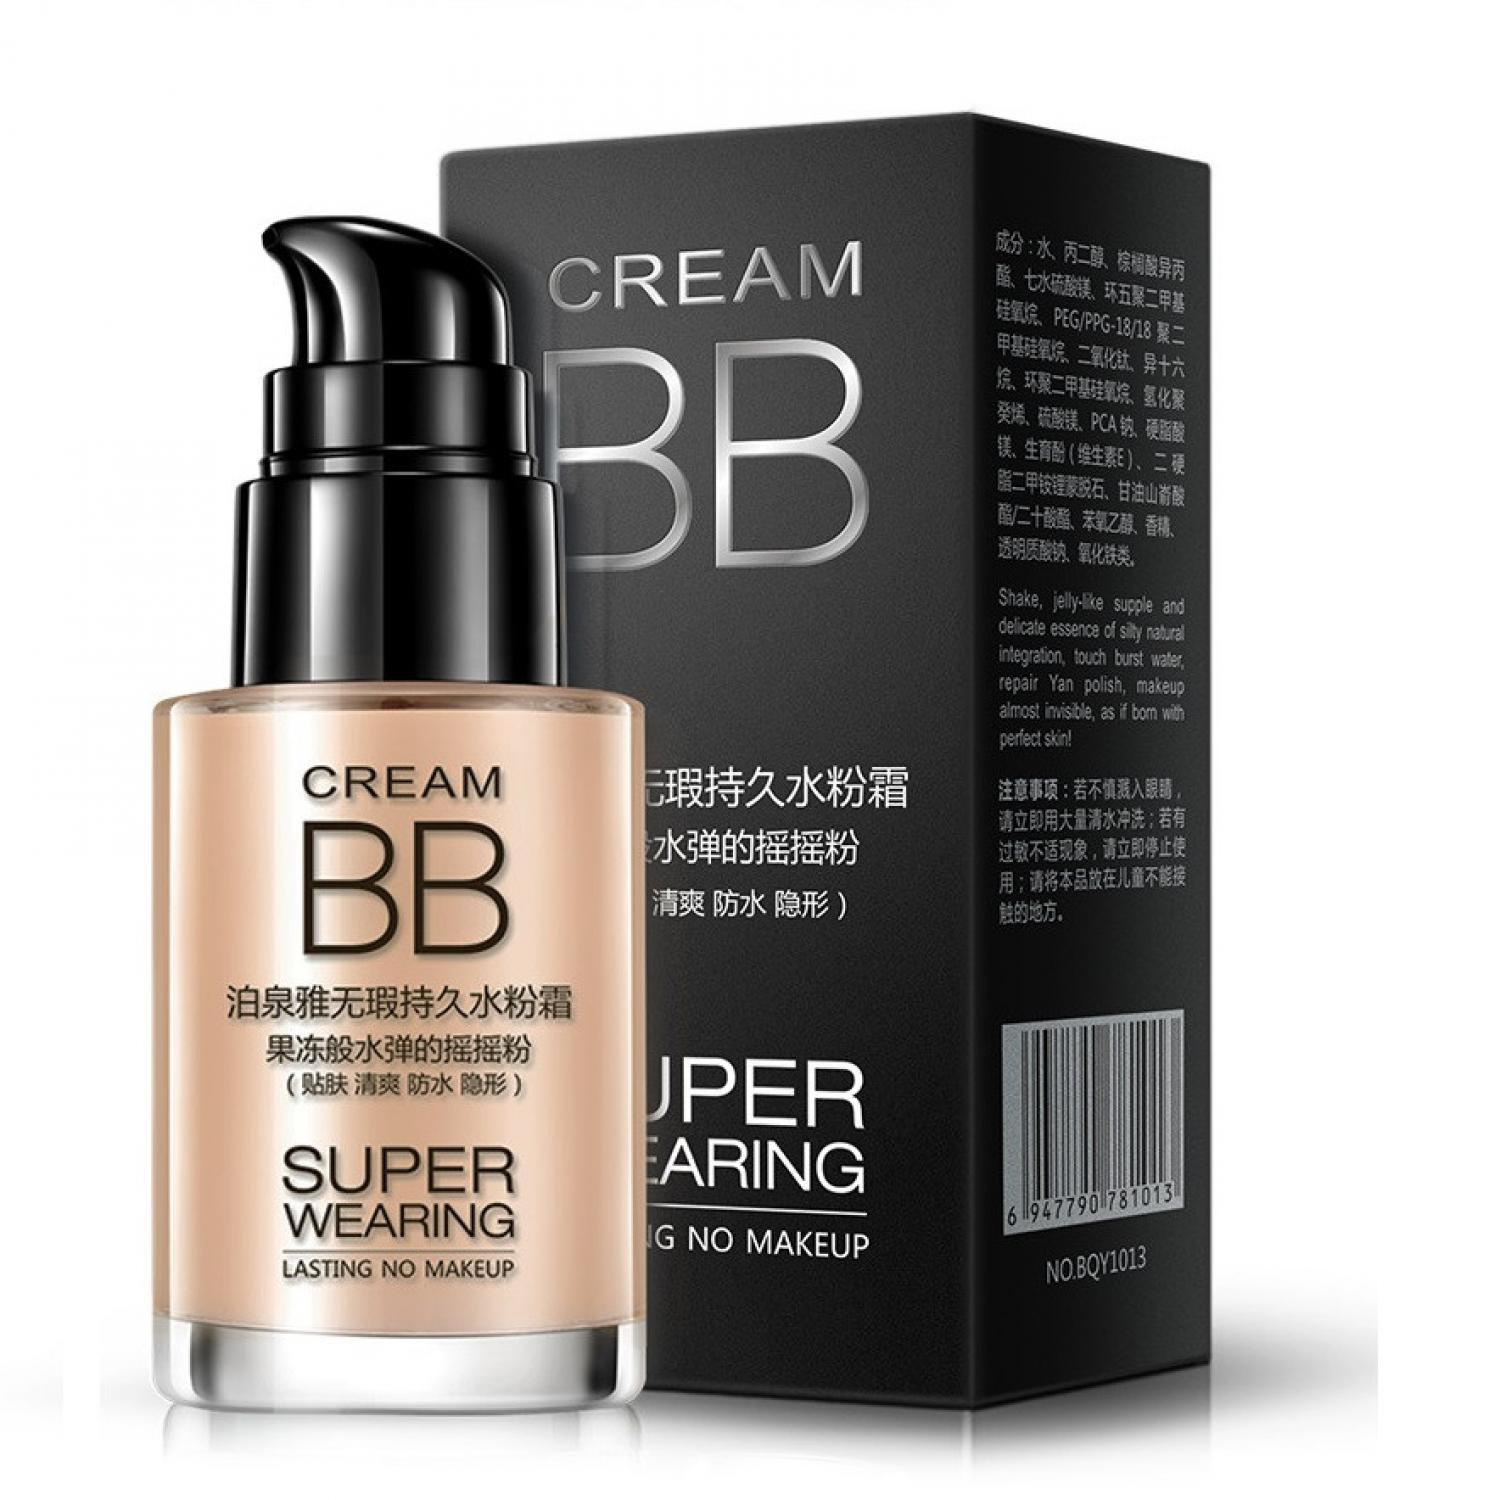 Jual Riasan Wajah Make Up No 3 Dus Putih Bioaqua Bb Cream Air Cushion Super Wearing Lasting 30ml Concealer Foundation Coverage Krim Original Asli Waterproof Makeup